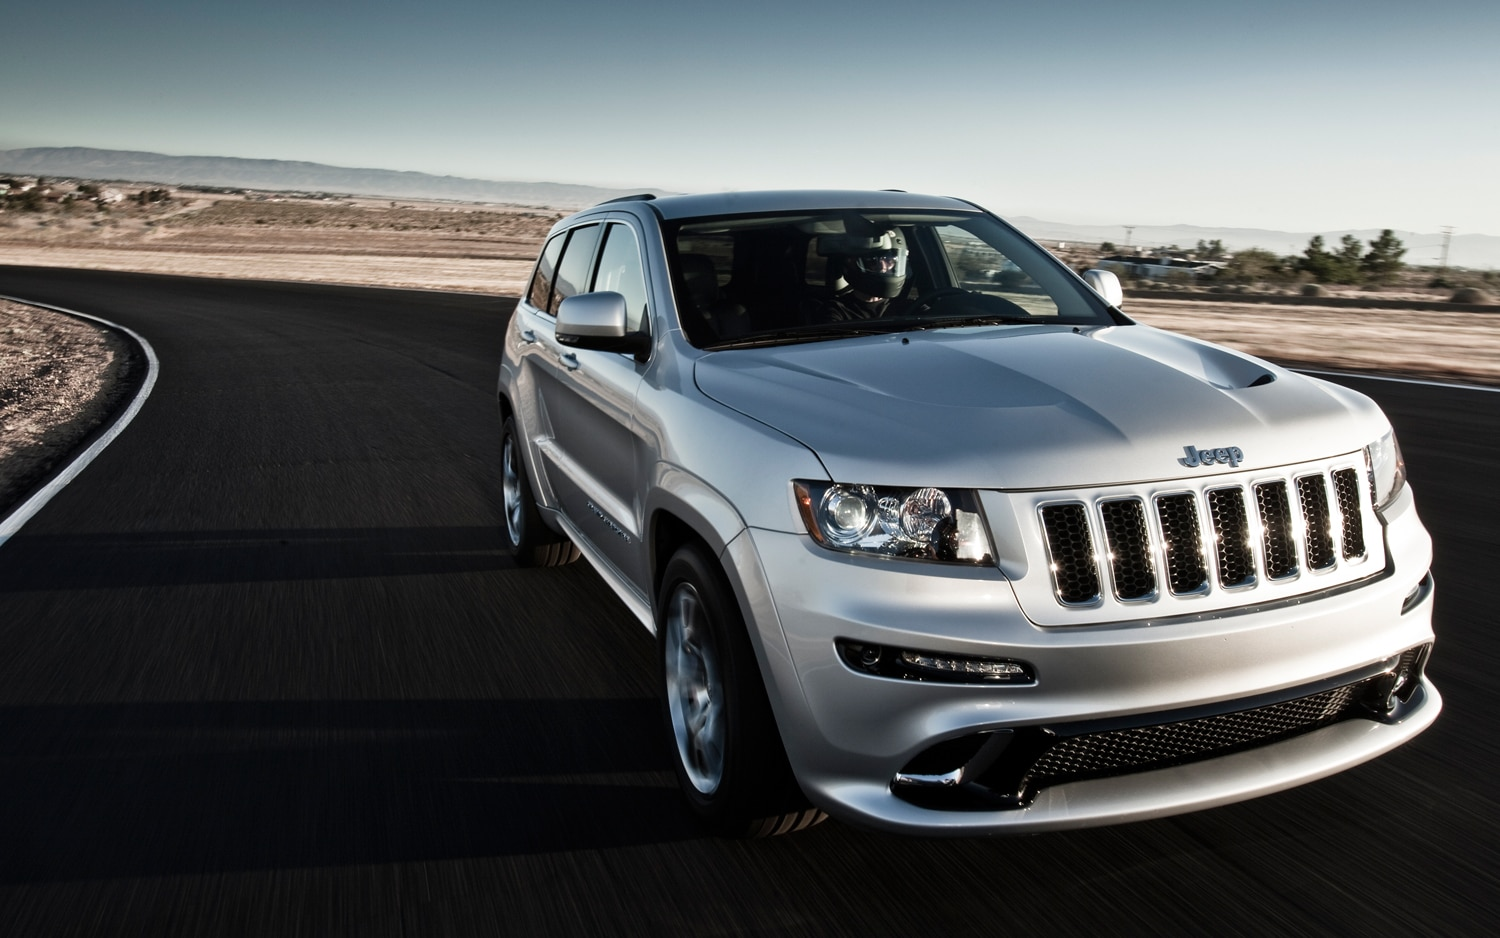 2012 Jeep Grand Cherokee SRT8 Front View In Motion